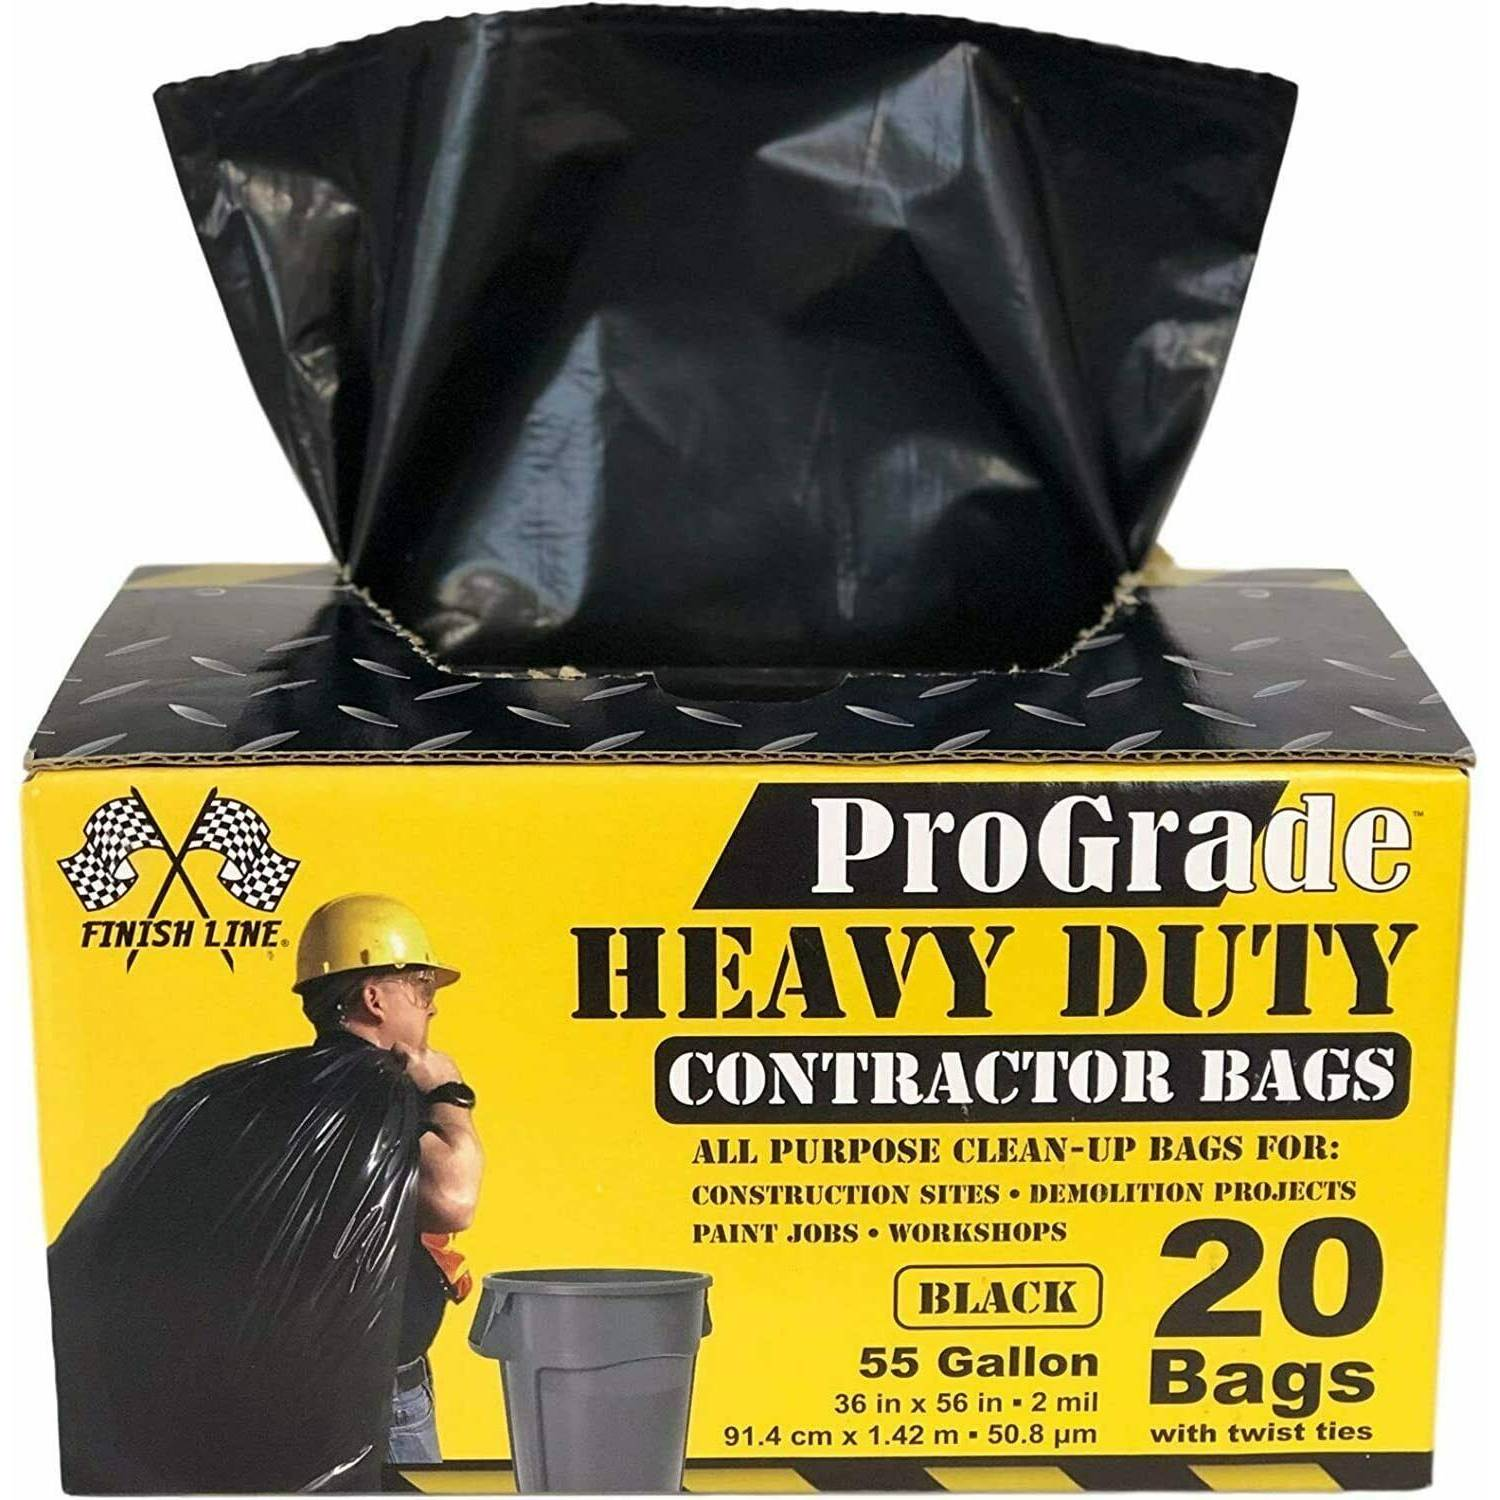 ProGrade Contractor Trash Bags 55 Gallon Heavy Duty (20 Bags w/ Ties)